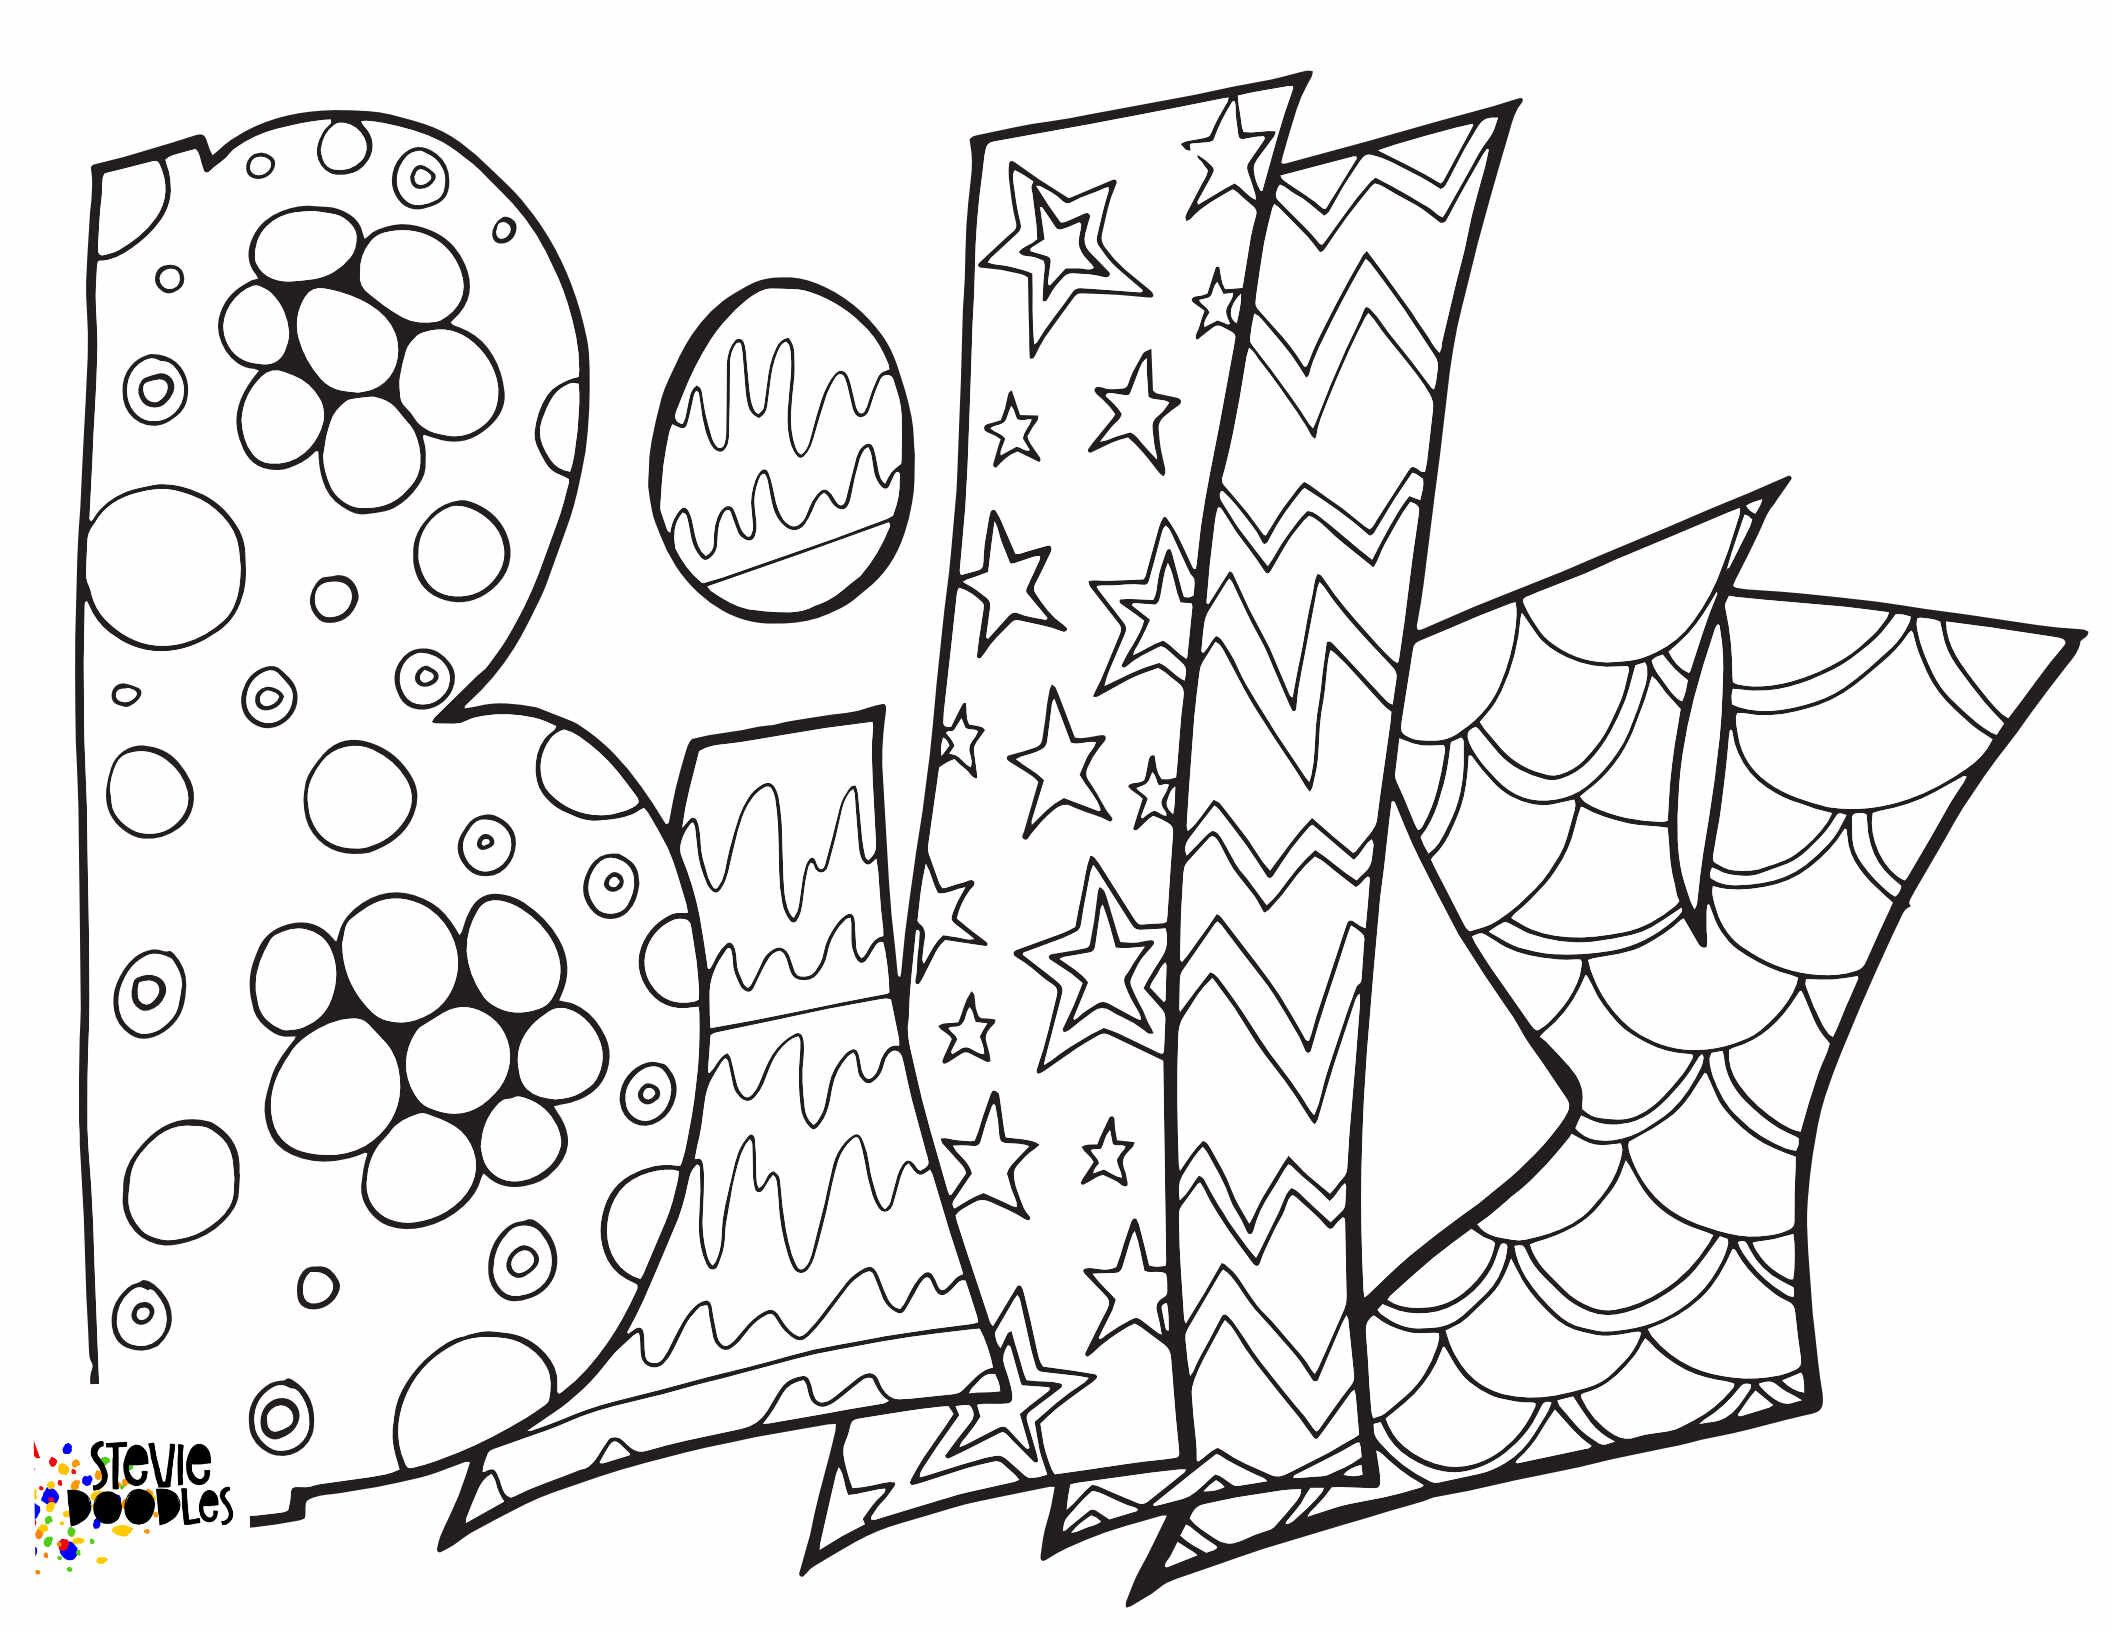 Billy Free Coloring Page Classic Stevie Doodles Stevie Doodles Free Coloring Pages Name Coloring Pages Free Printable Coloring Pages